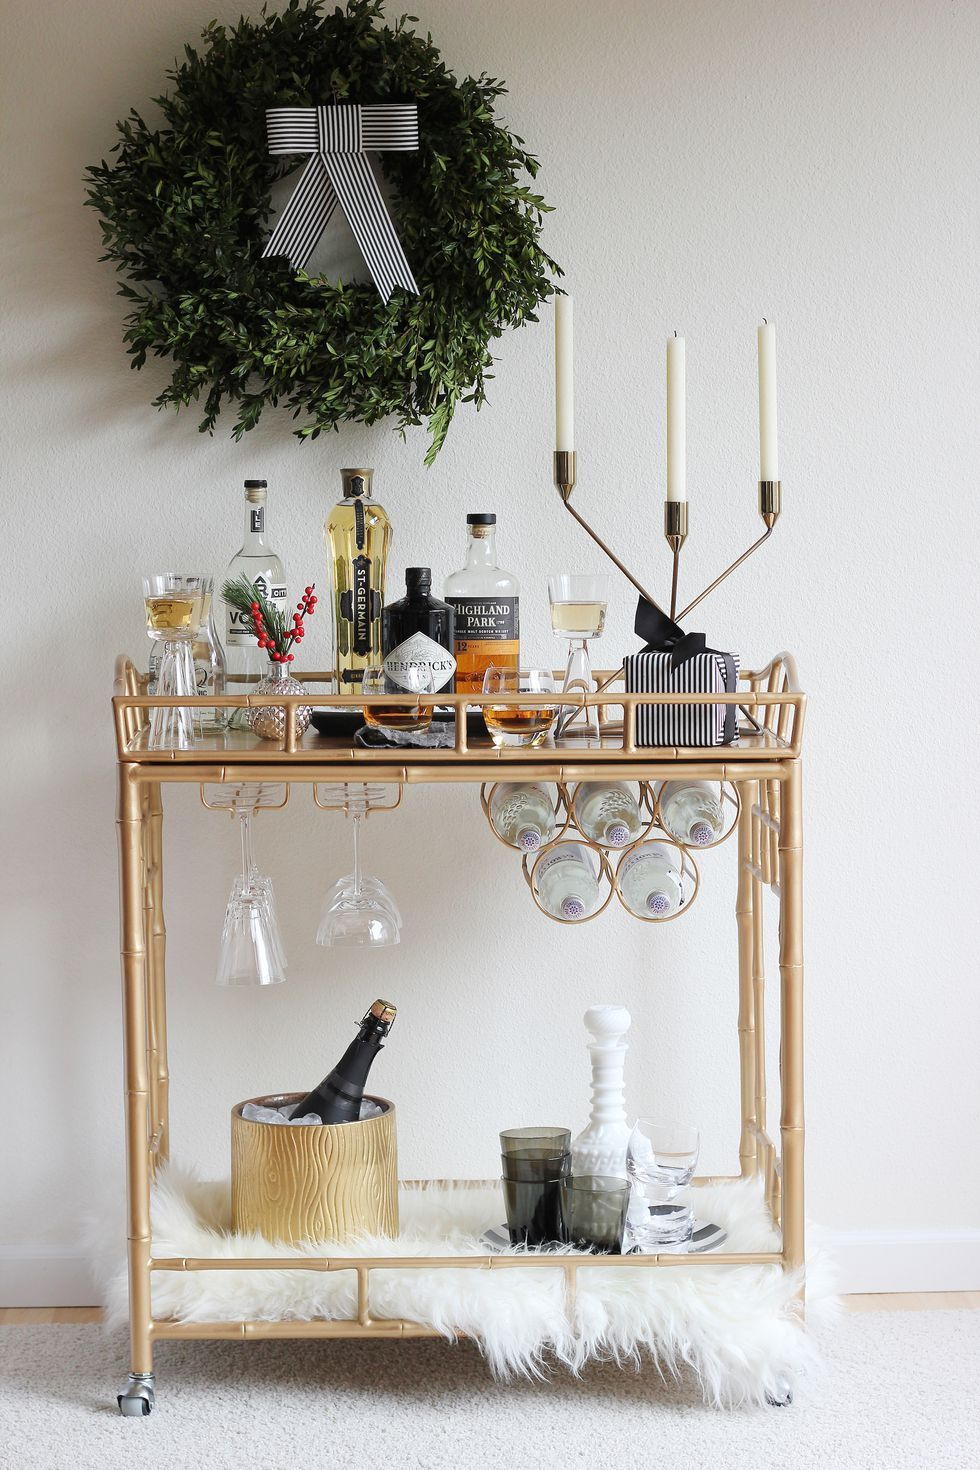 These Chic Holiday Decor Ideas Are Brilliant for Small Spaces